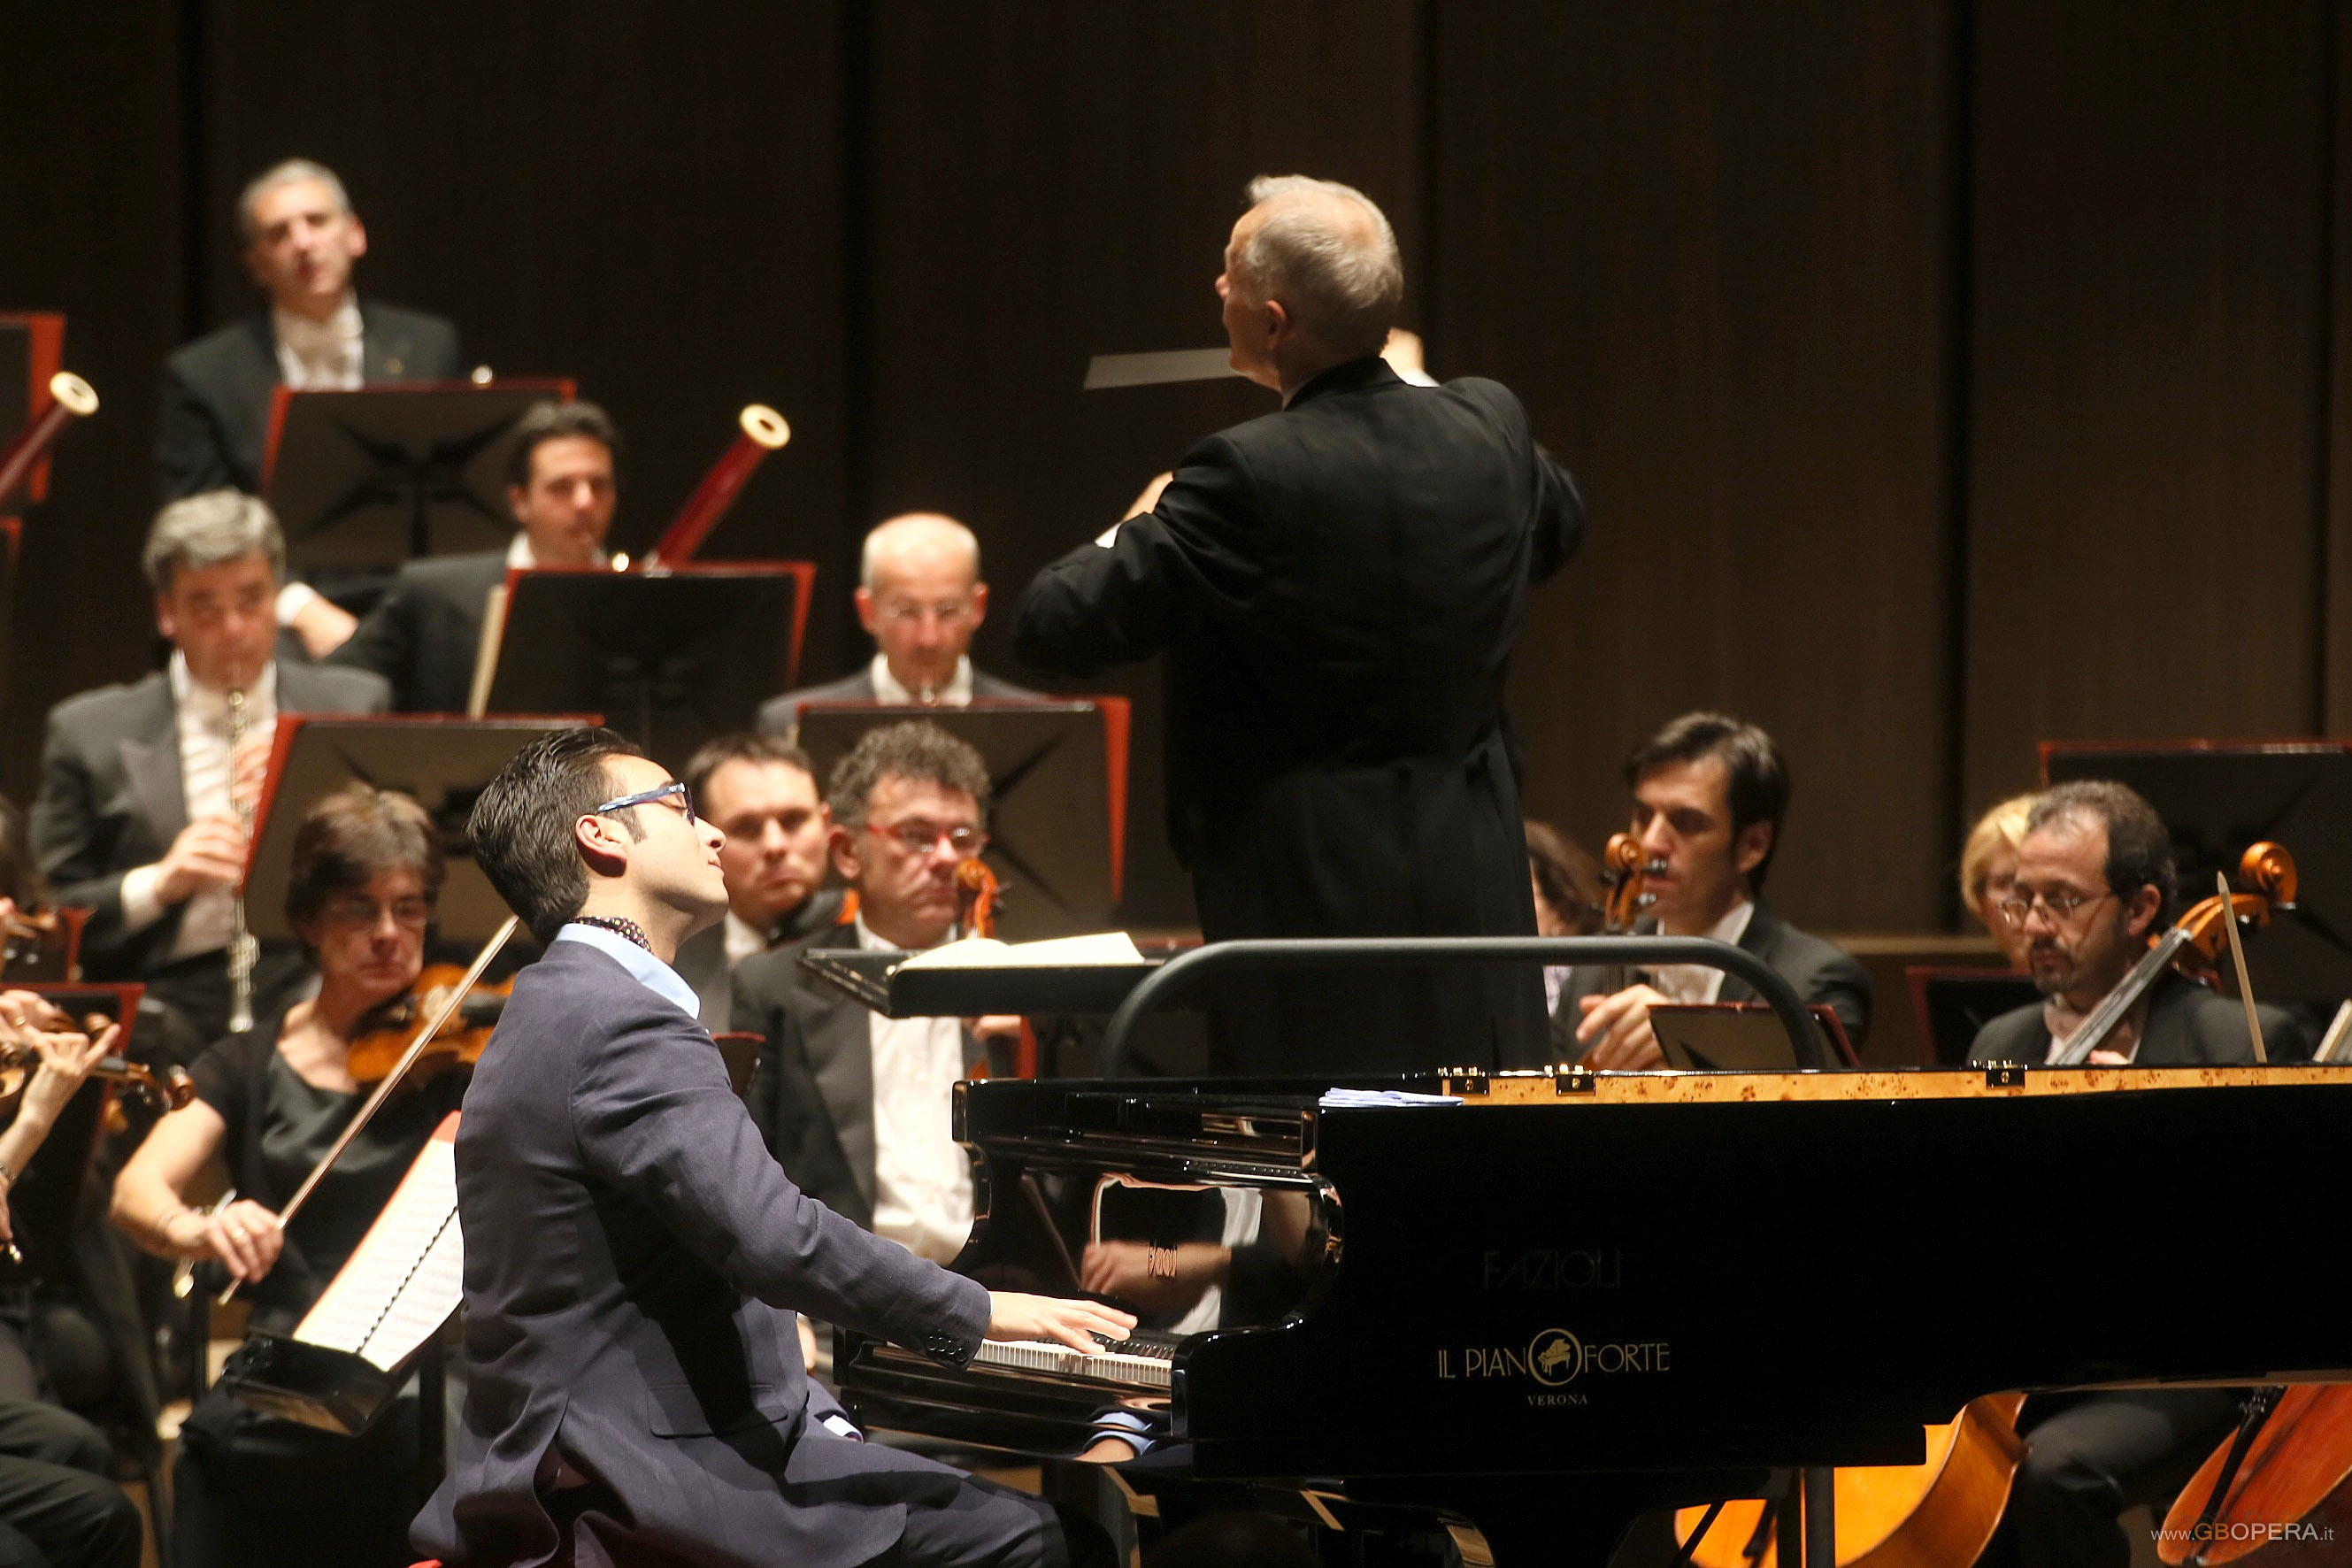 The Classical Viennese School  at the Teatro Ristori